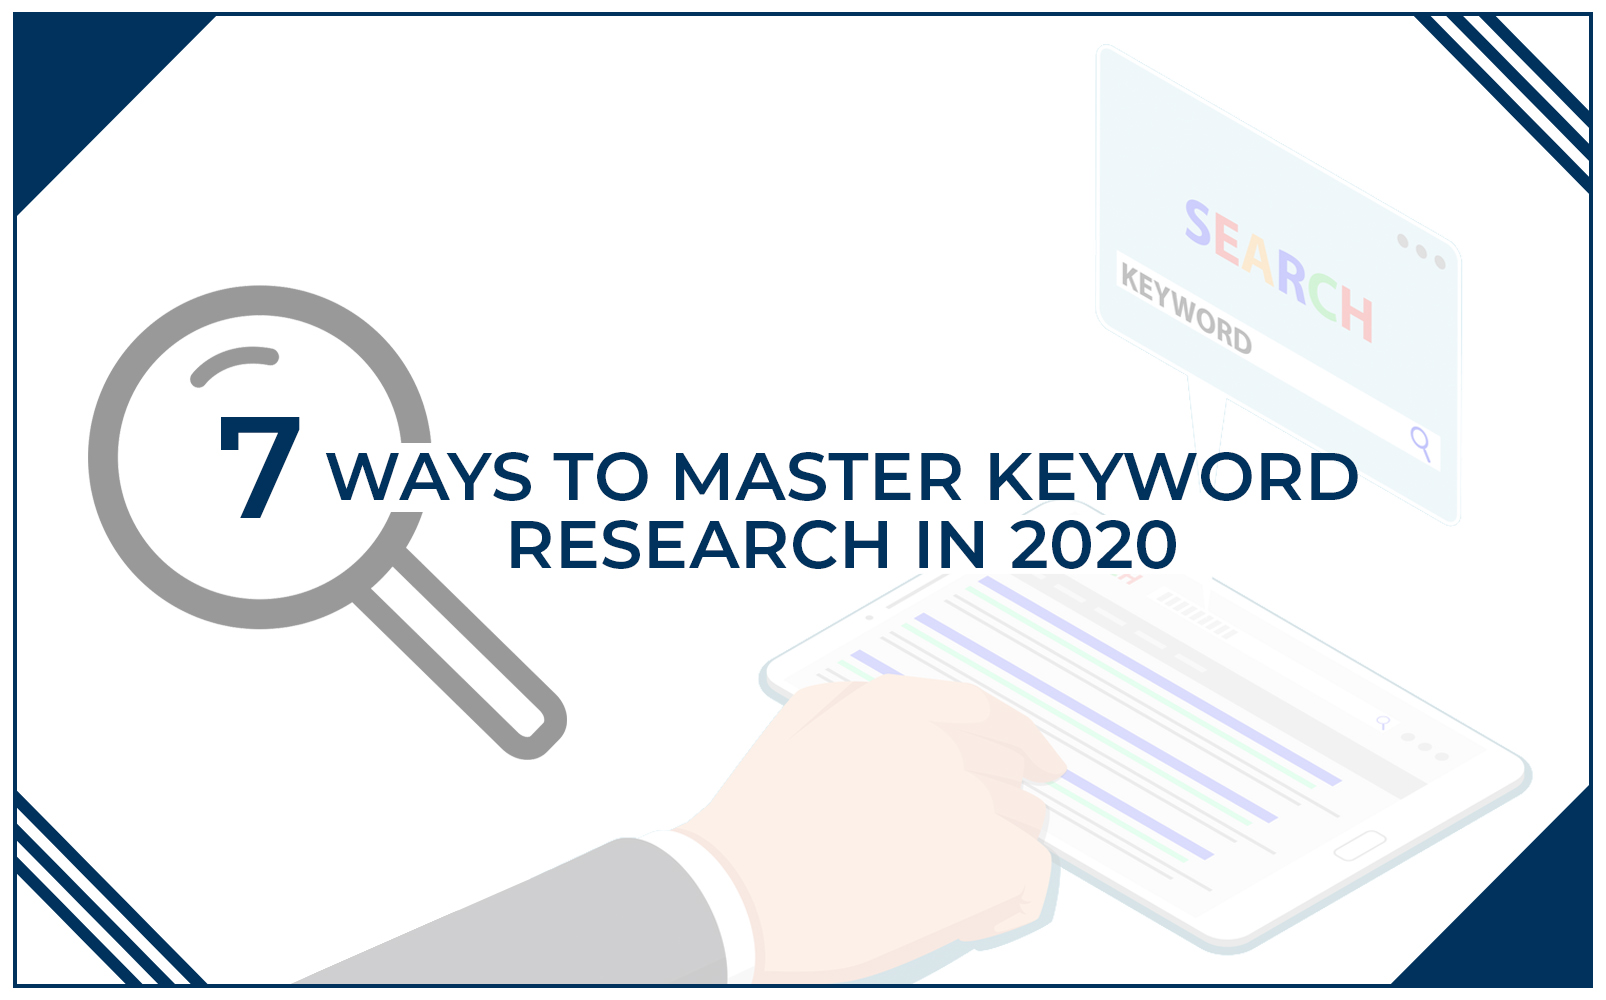 7 ways to master keyword research 2020